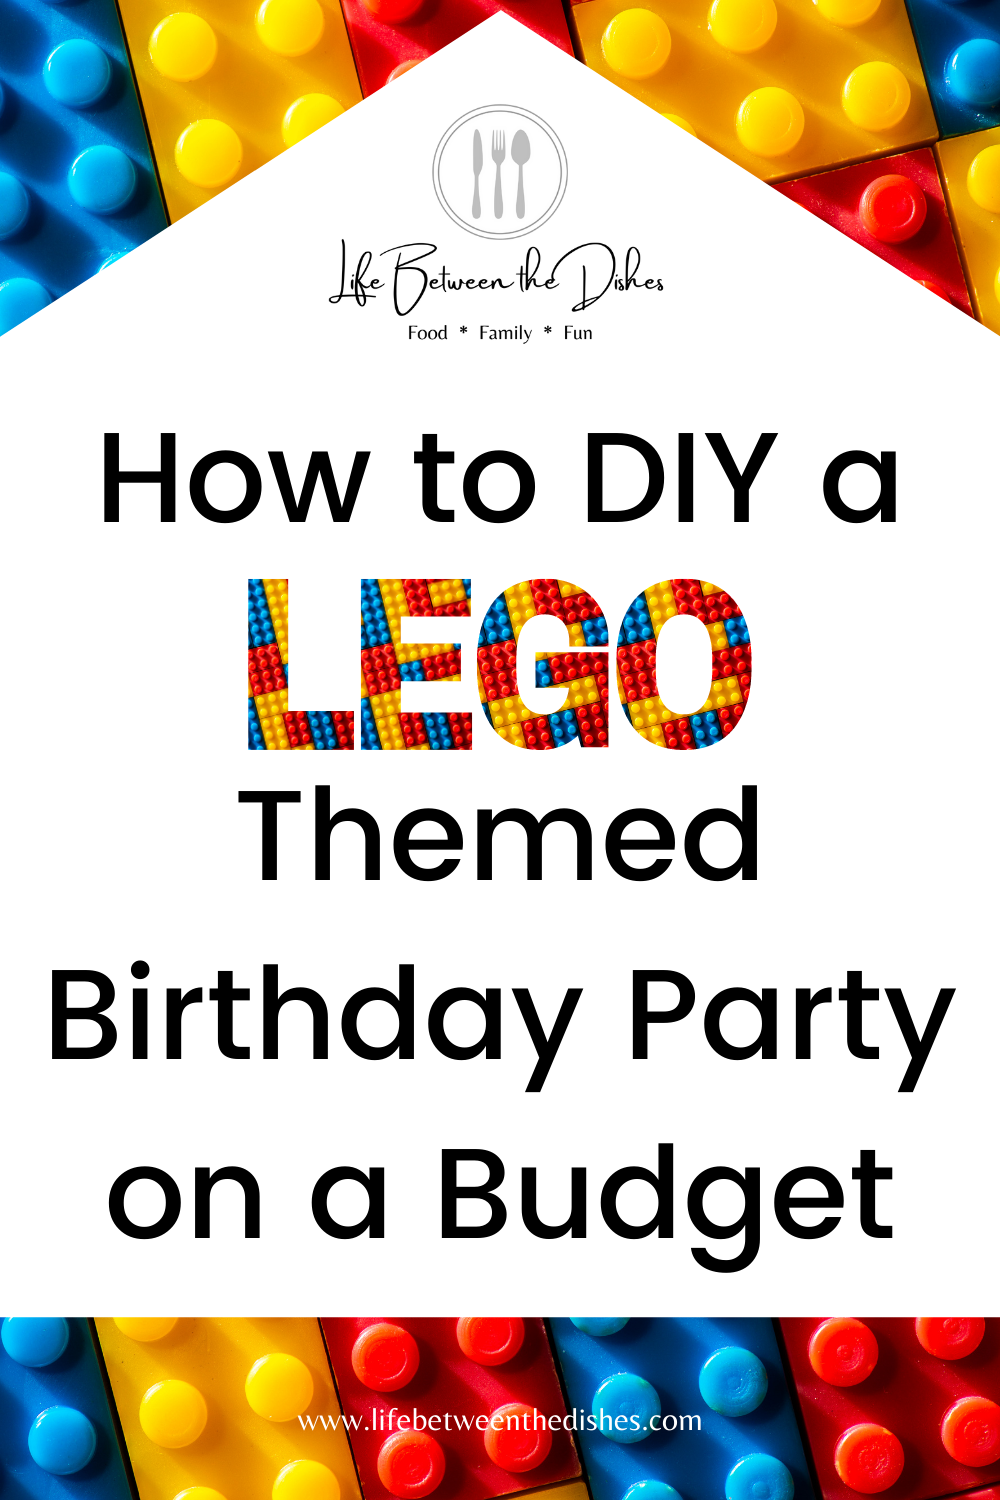 How to DIY a Themed Birthday Party on a Budget